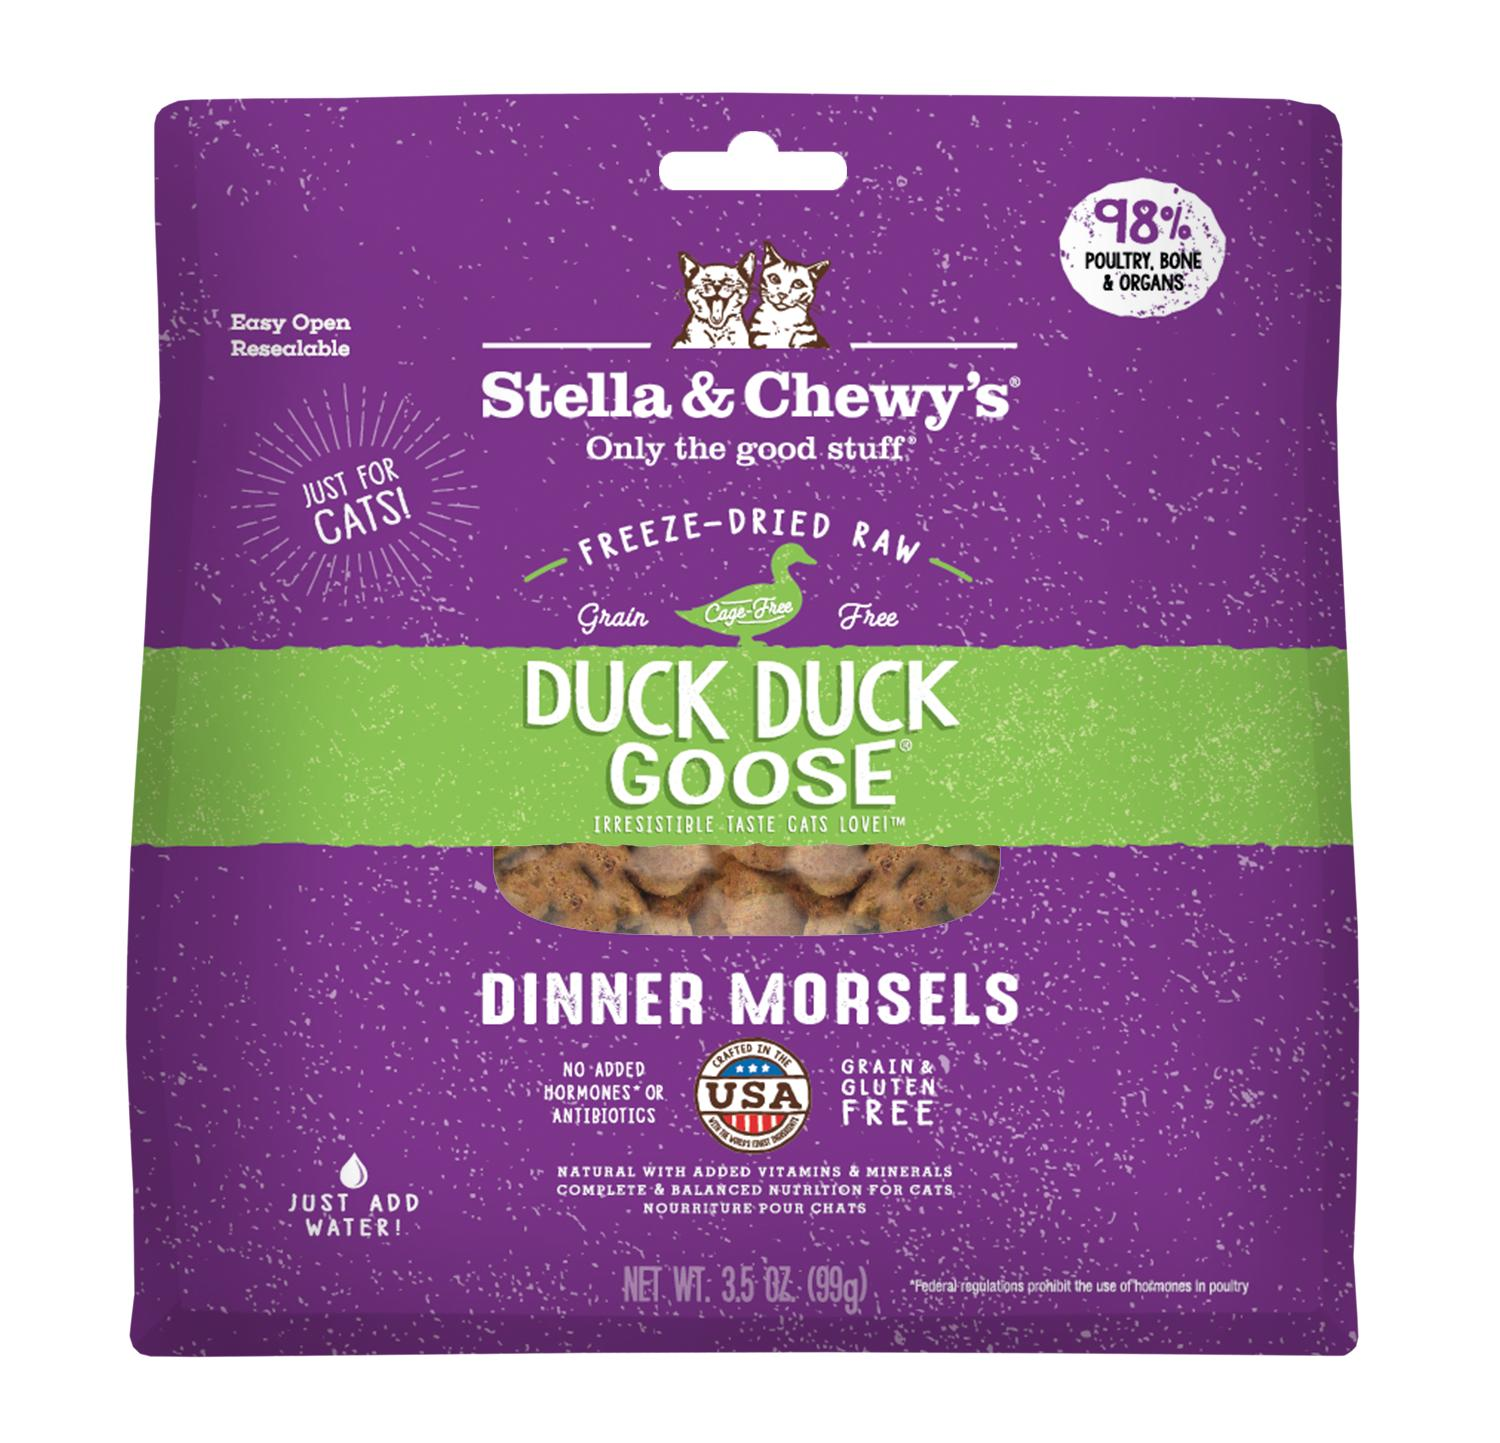 Stella & Chewy's Duck Duck Goose Dinner Morsels Grain-Free Freeze-Dried Cat Food Image